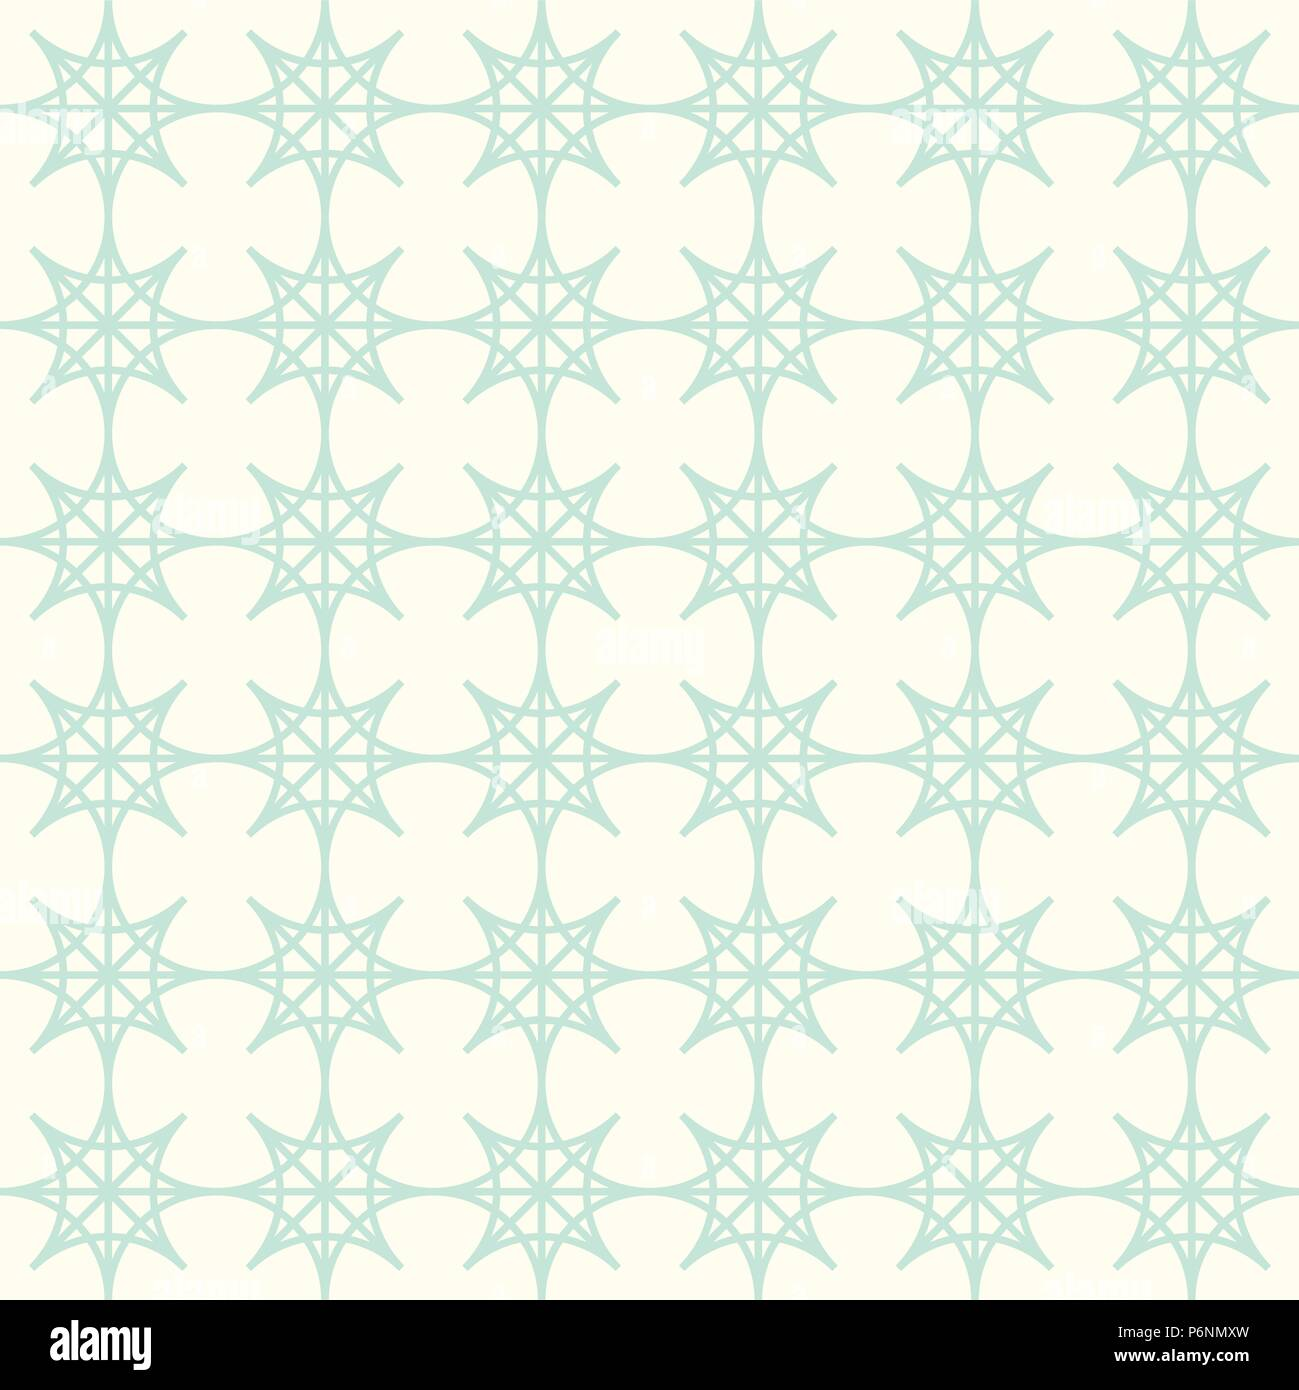 Green four angle star seamless pattern on pastel background. Abstract star pattern in modern and vintage style for design. - Stock Vector